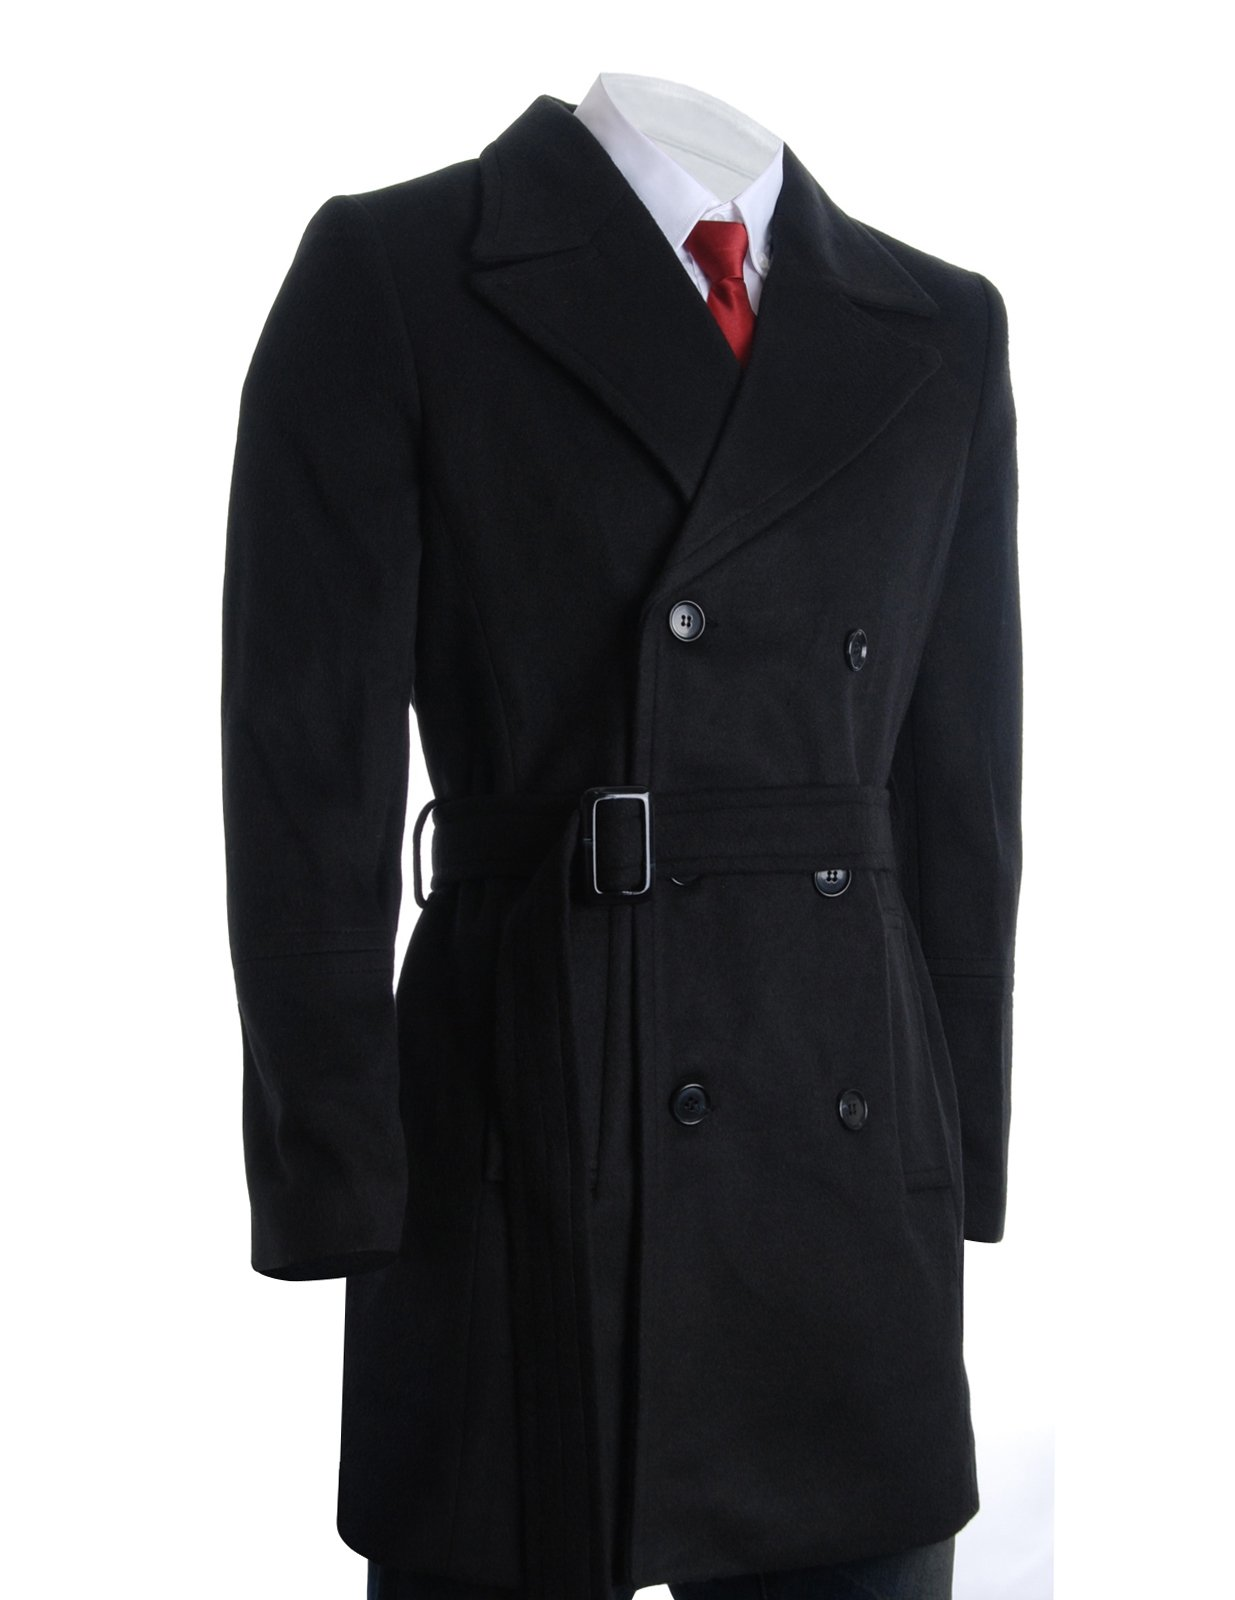 FLATSEVEN Mens Winter Double Breasted Pea Coat Long Jacket (CT122) Black, US XX-Large/Asia XXXXL